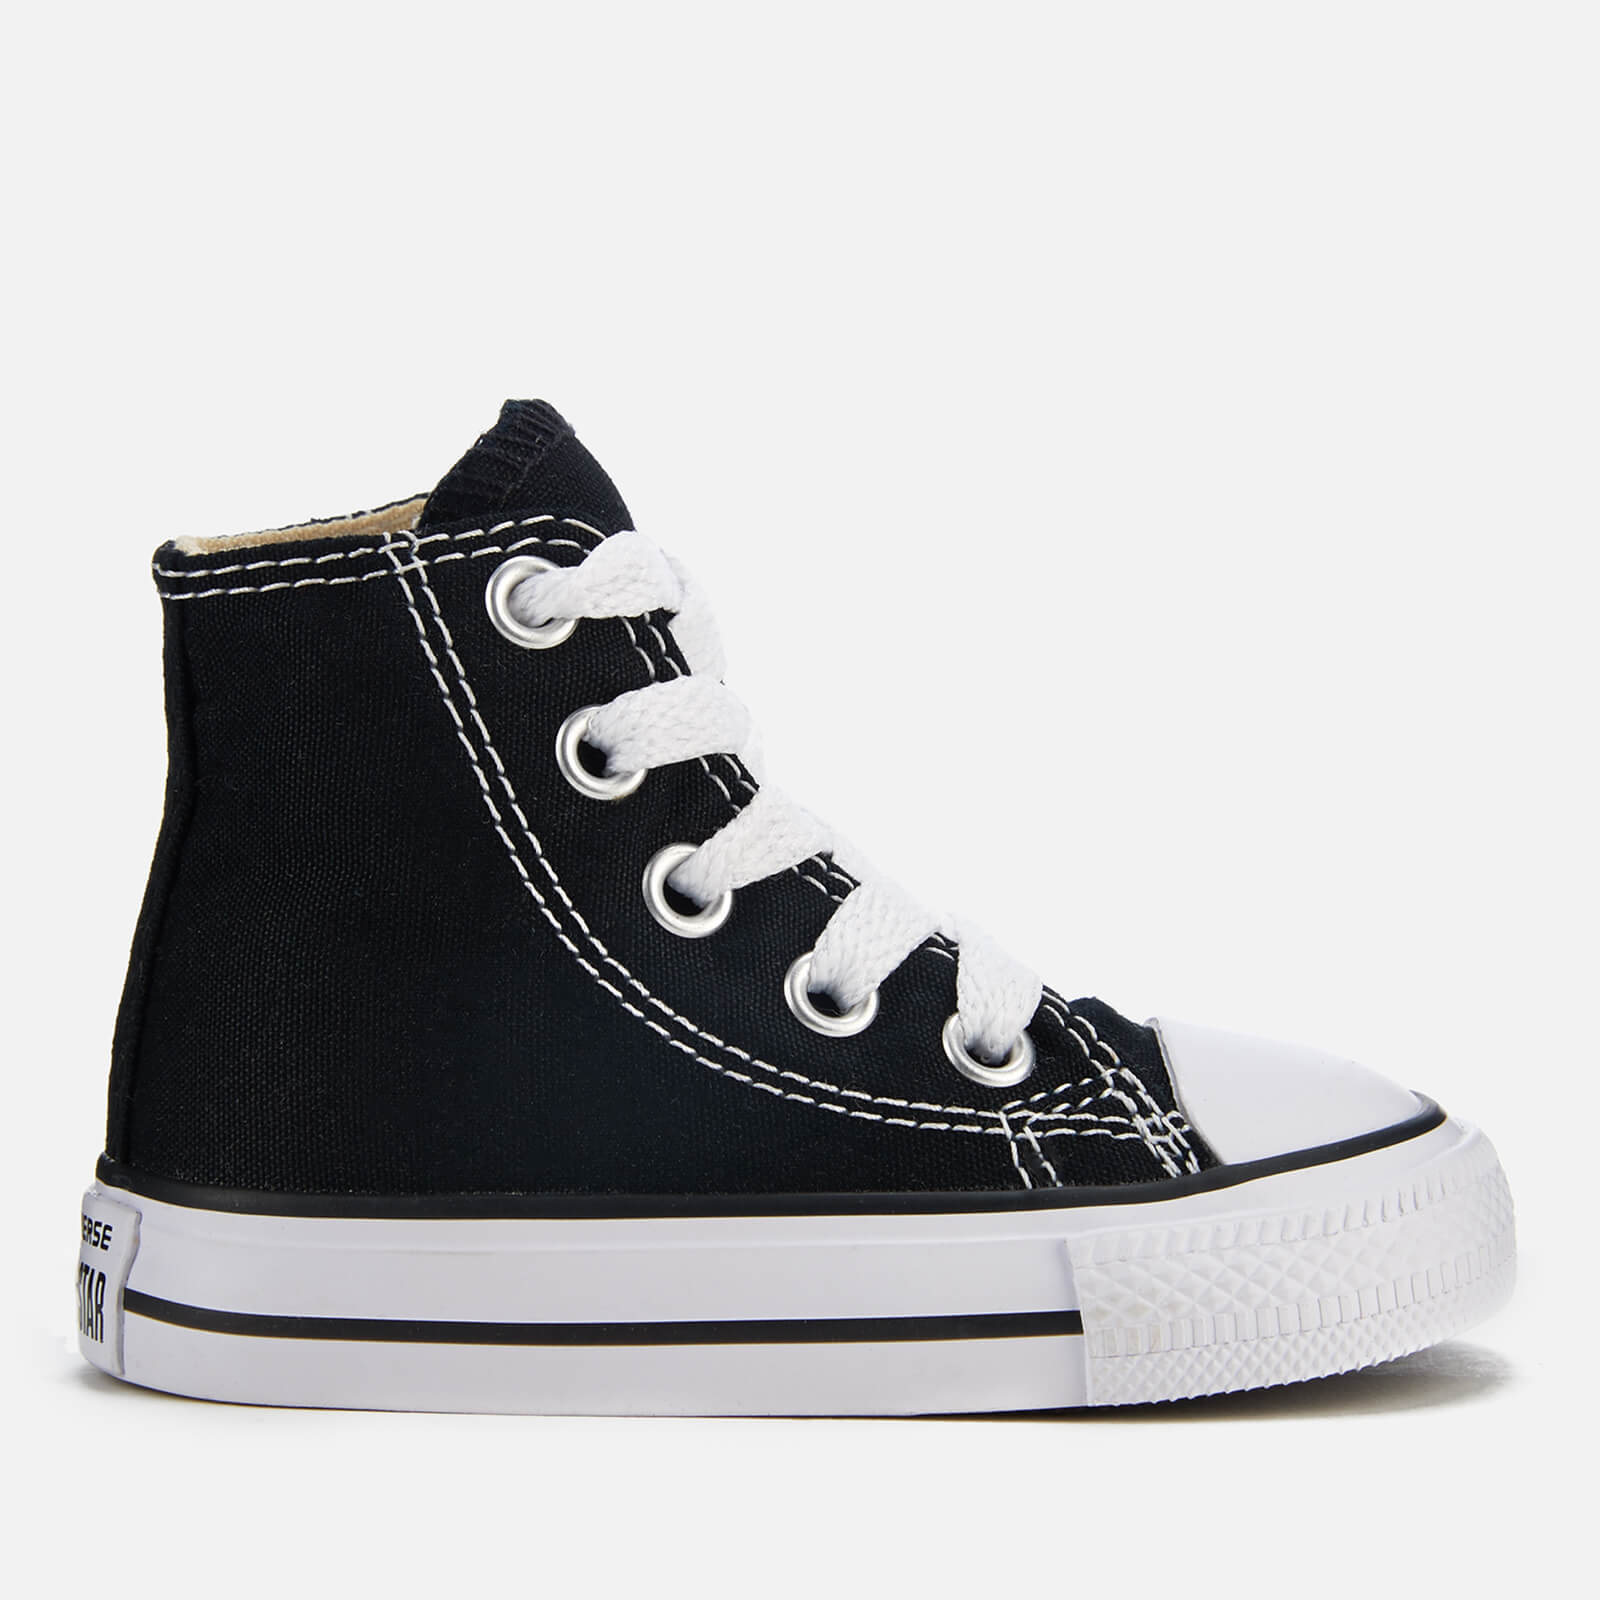 Converse Toddlers' Chuck Taylor All